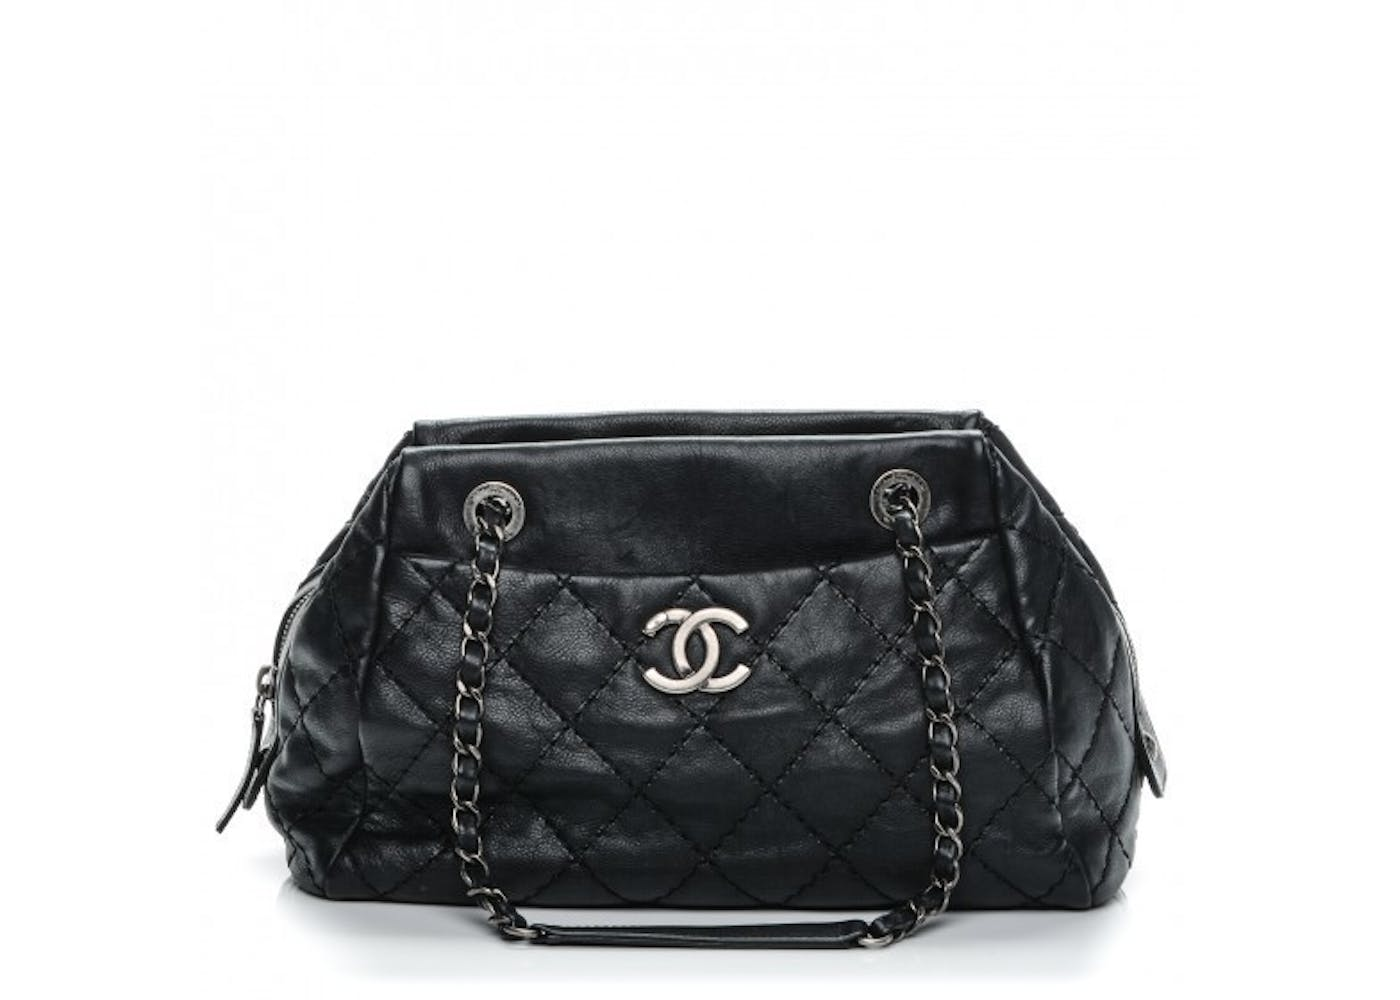 Tote Stitch It Quilted Small Black : chanel quilted small bag - Adamdwight.com